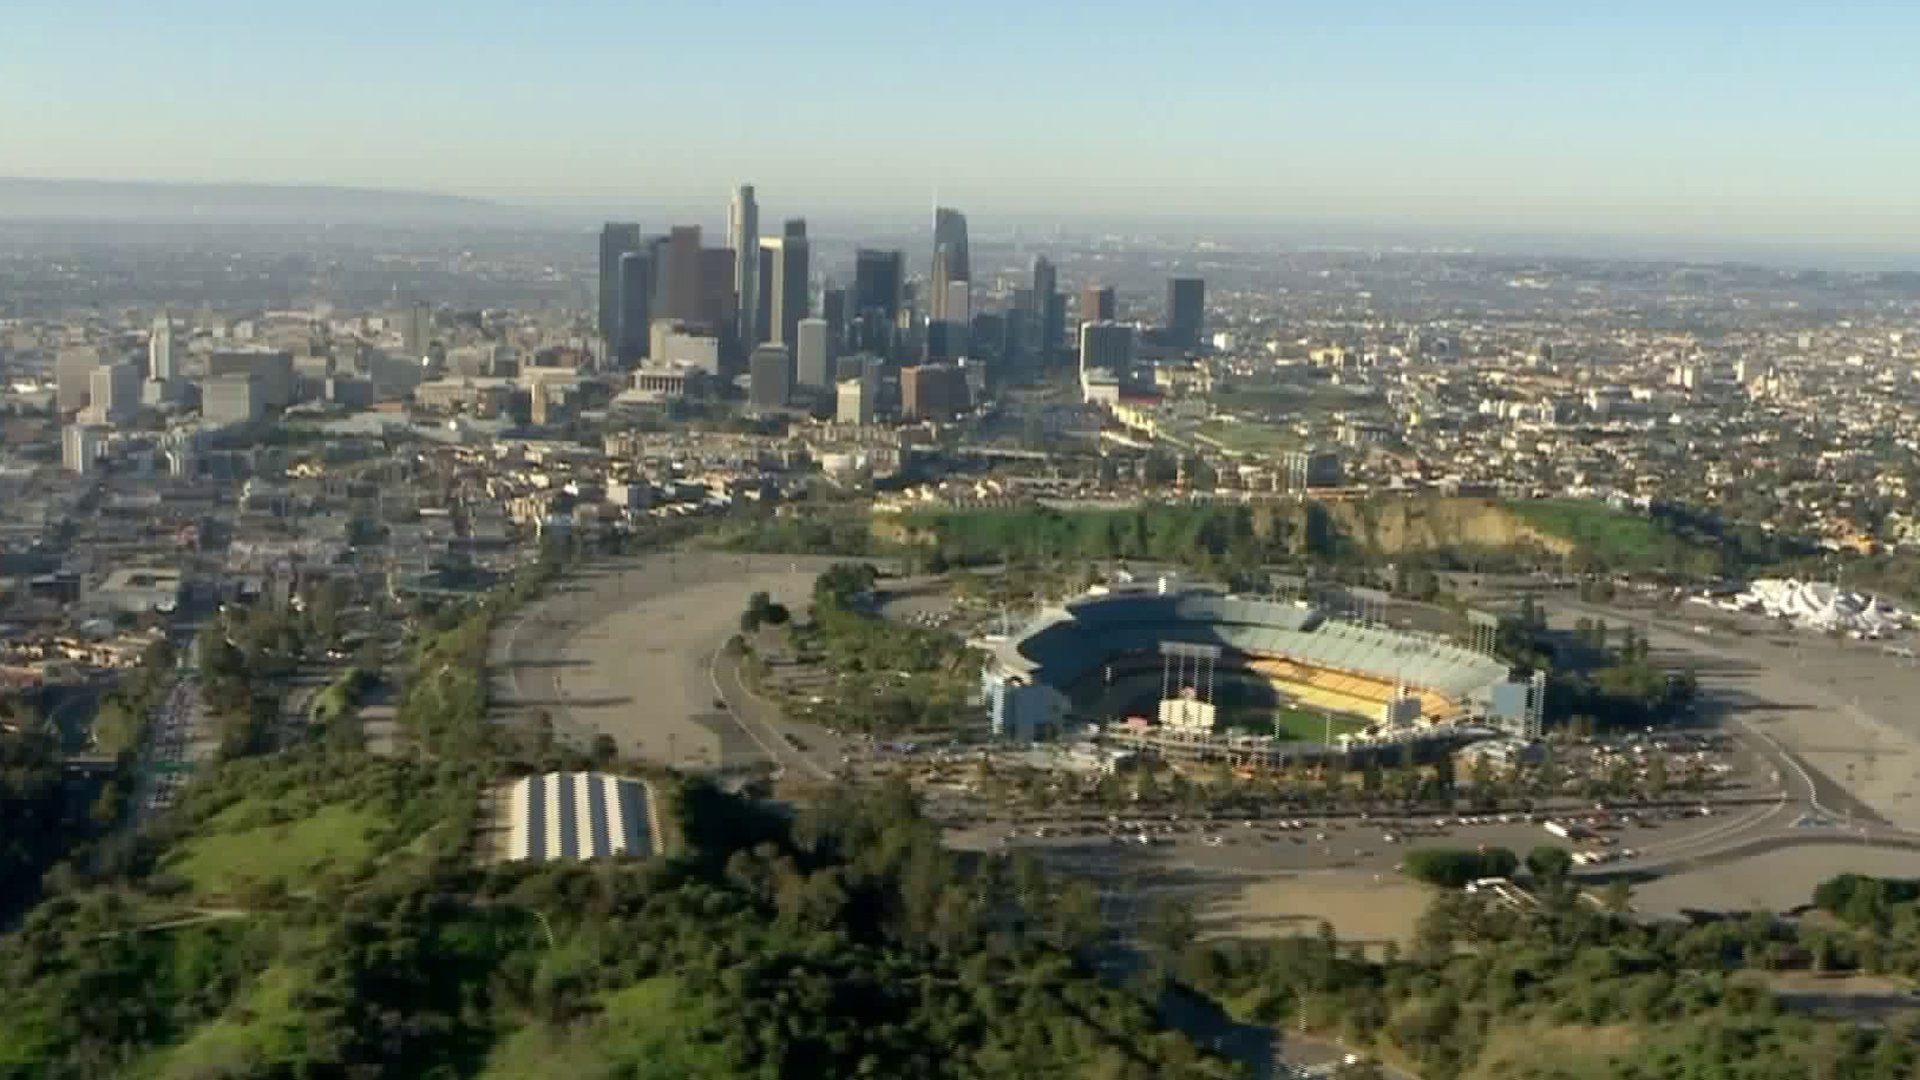 The downtown Los Angeles skyline is seen on Feb. 25, 2020. (Credit: Sky5)